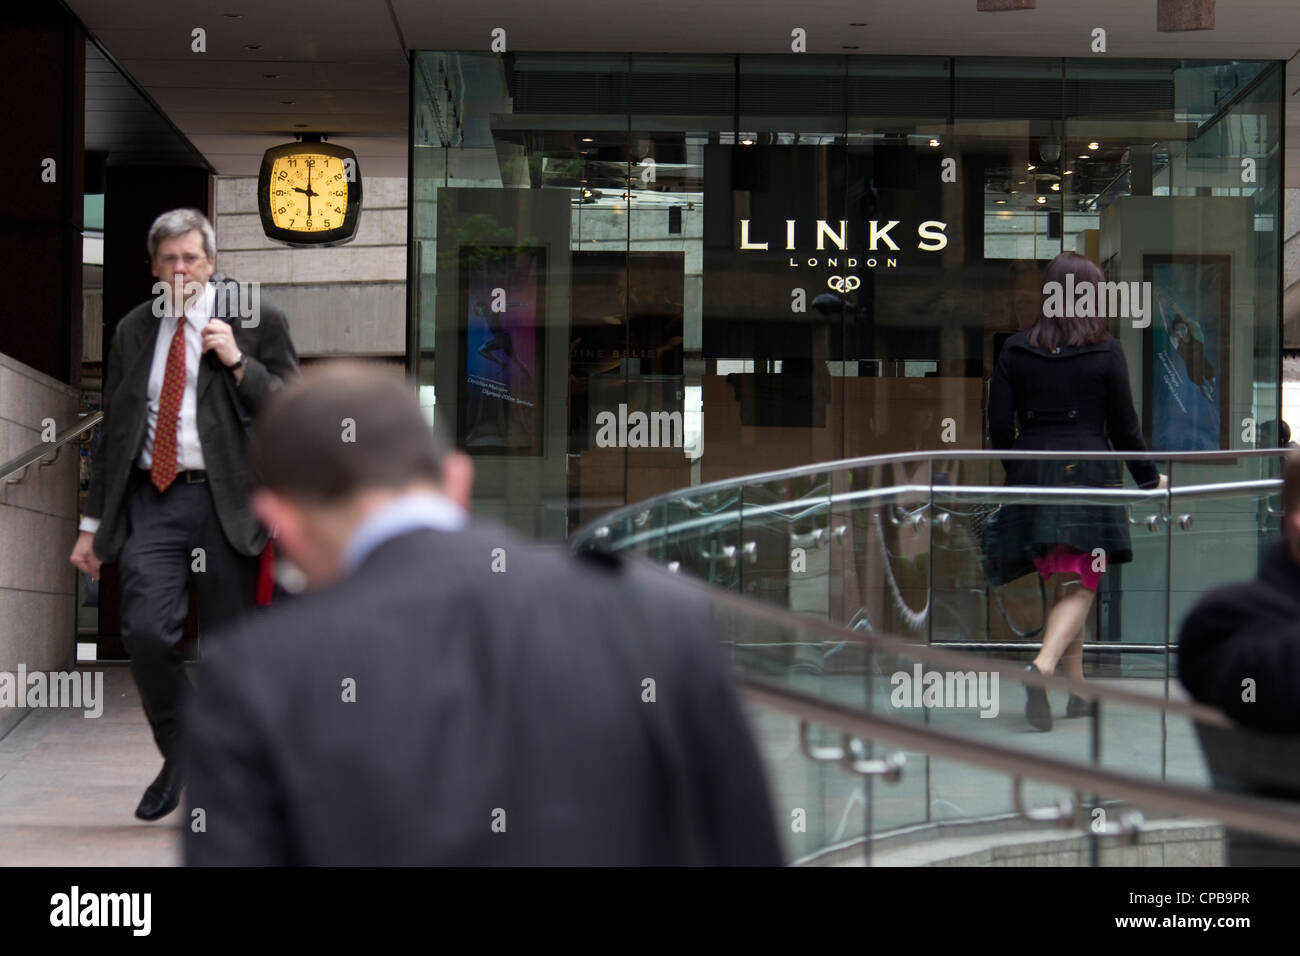 Links of London jewellery retail outlet - Stock Image